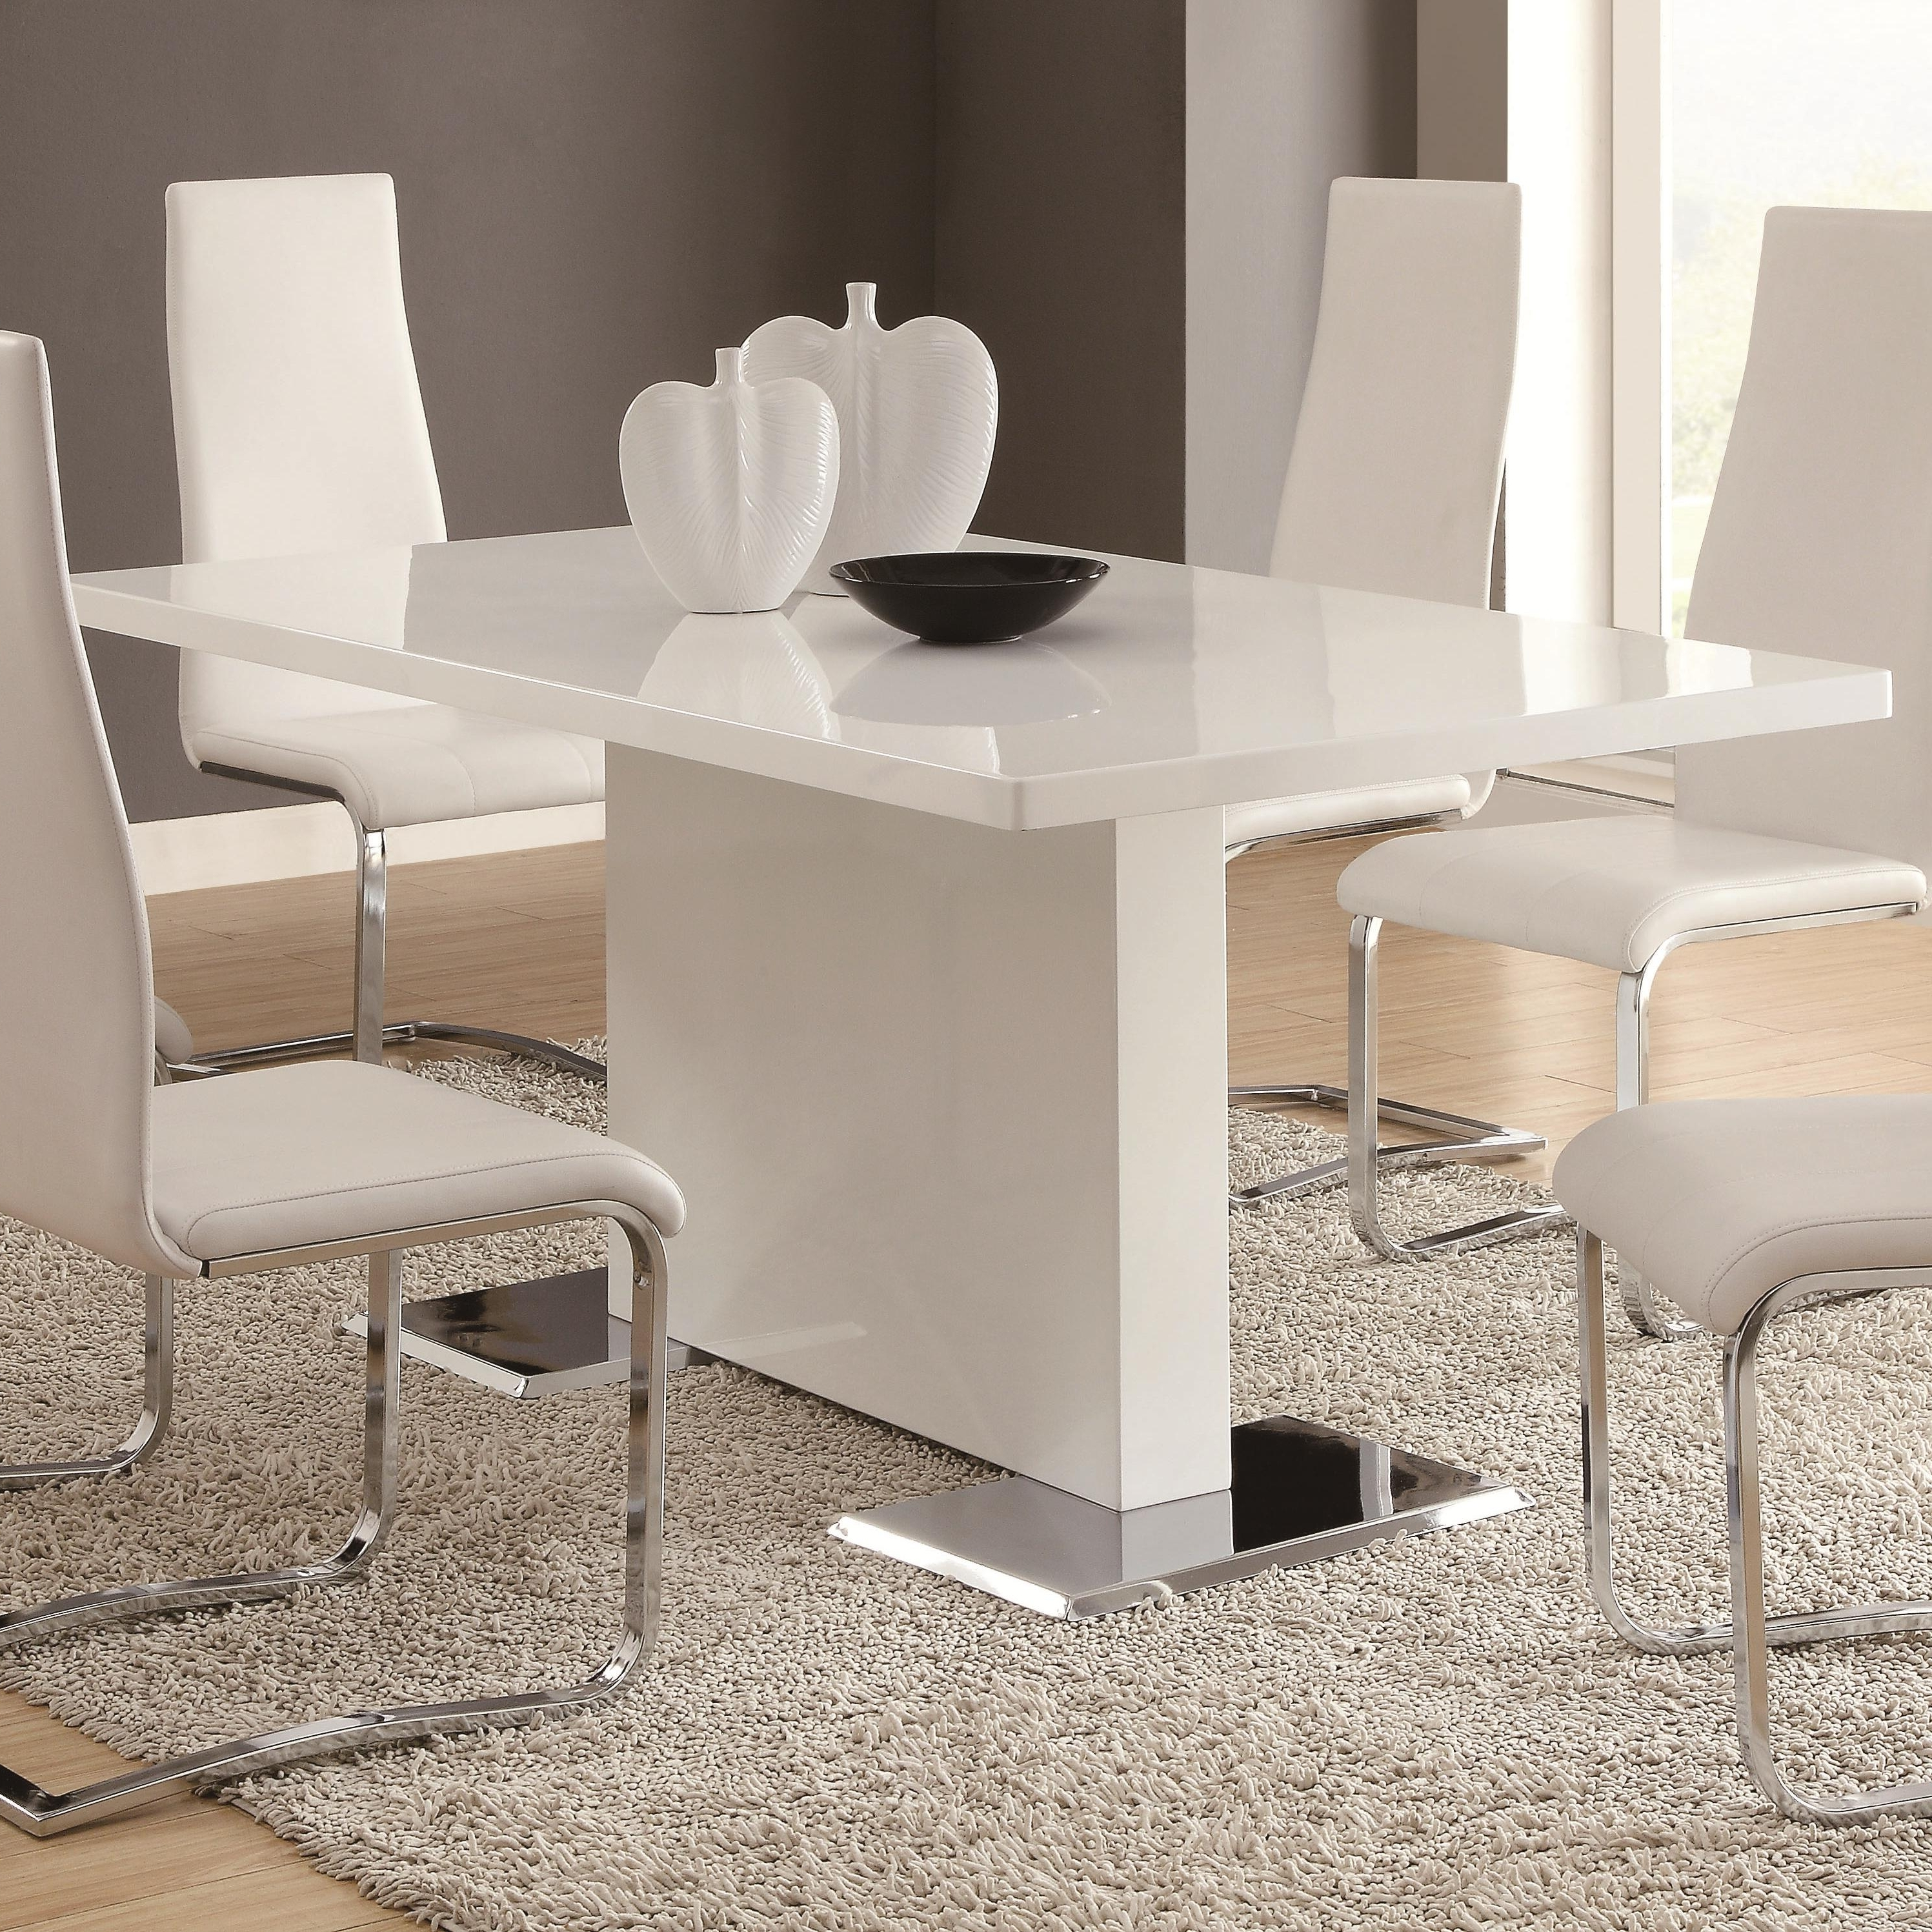 Chrome Leather Dining Chairs With Regard To Fashionable Coaster Modern Dining 102310 White Dining Table With Chrome Metal (Gallery 19 of 25)